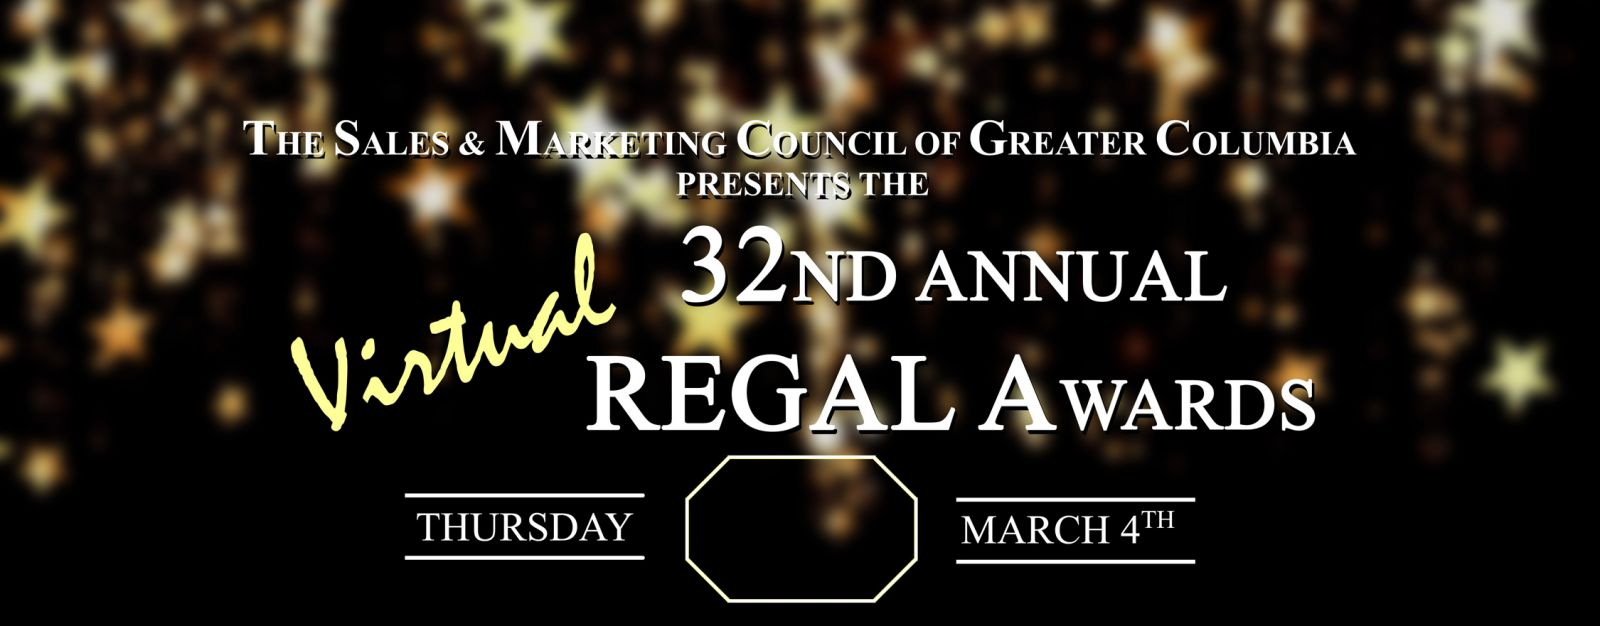 32nd annual REGAL Awards Gala March 4, 2021